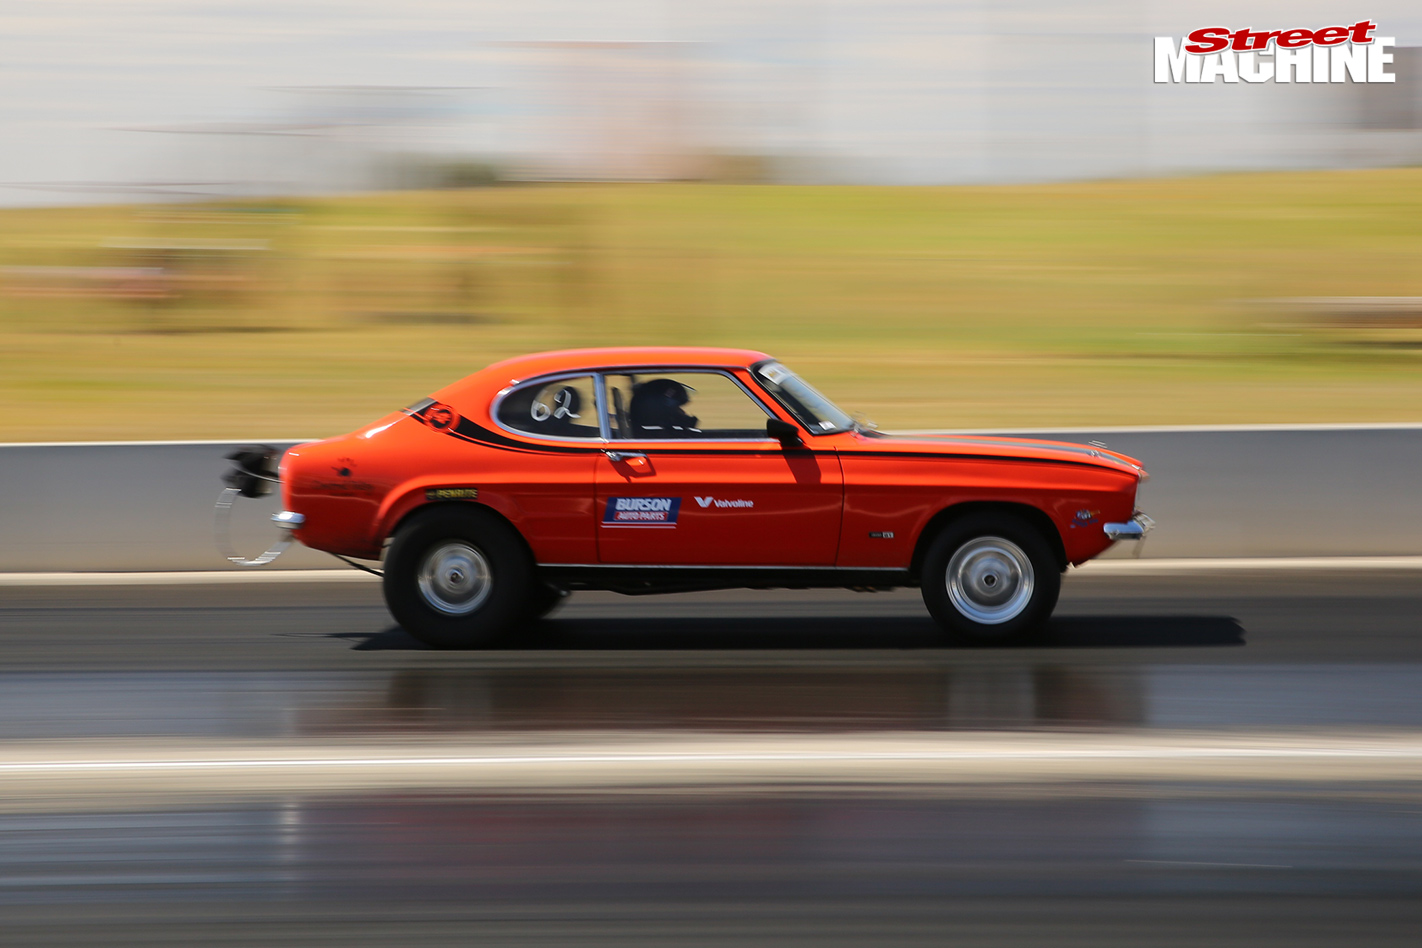 TURBO-LS-FORD-CAPRI-AND-TWIN-TURBO-LS-MITSUBISHI-EXPRESS-VAN-AT-DRAG-CHALLENGE-move